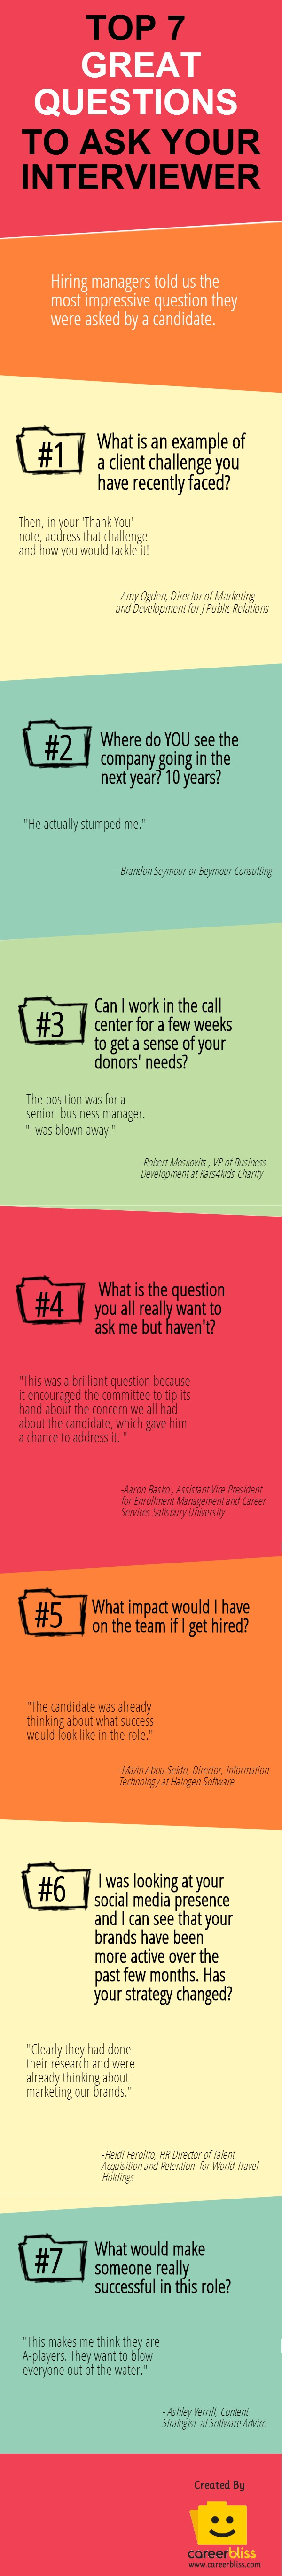 top 7 great questions to ask your interviewer infographic alt